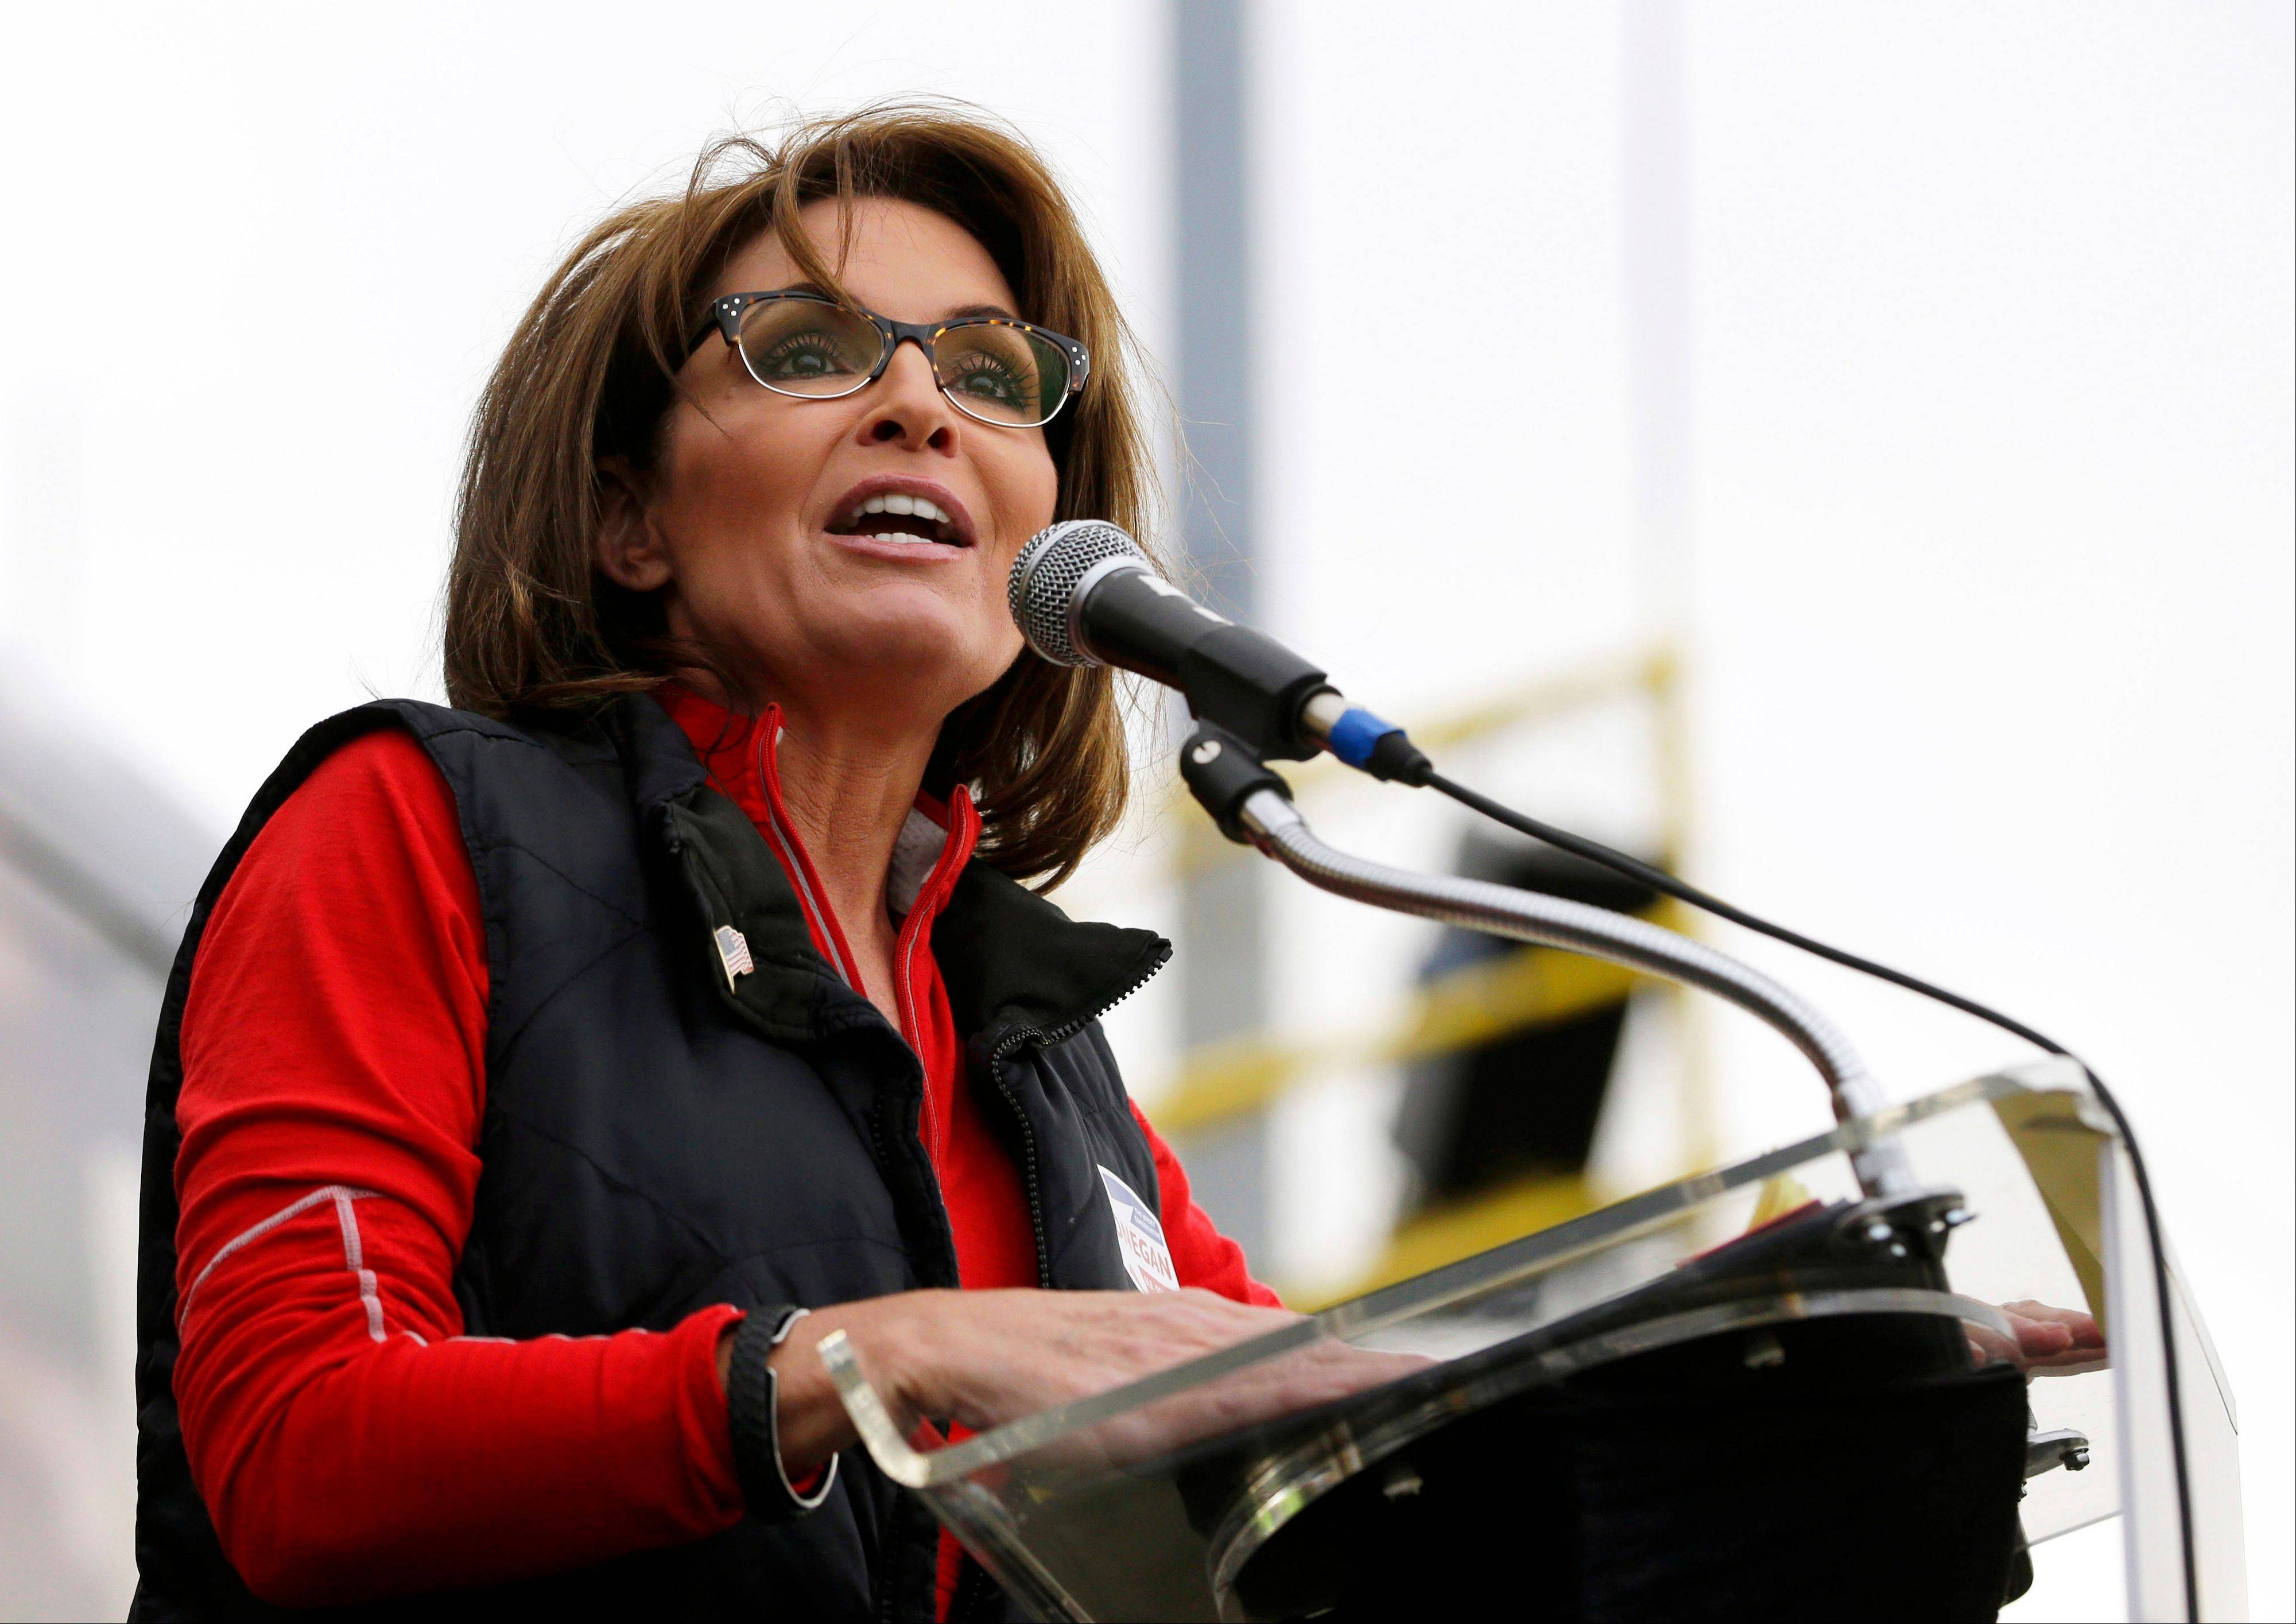 The Sportsman Channel said Monday it has hired Sarah Palin to be host of a weekly outdoors-oriented program that will celebrate the �red, wild and blue� lifestyle. The program, �Amazing America,� will debut next April.